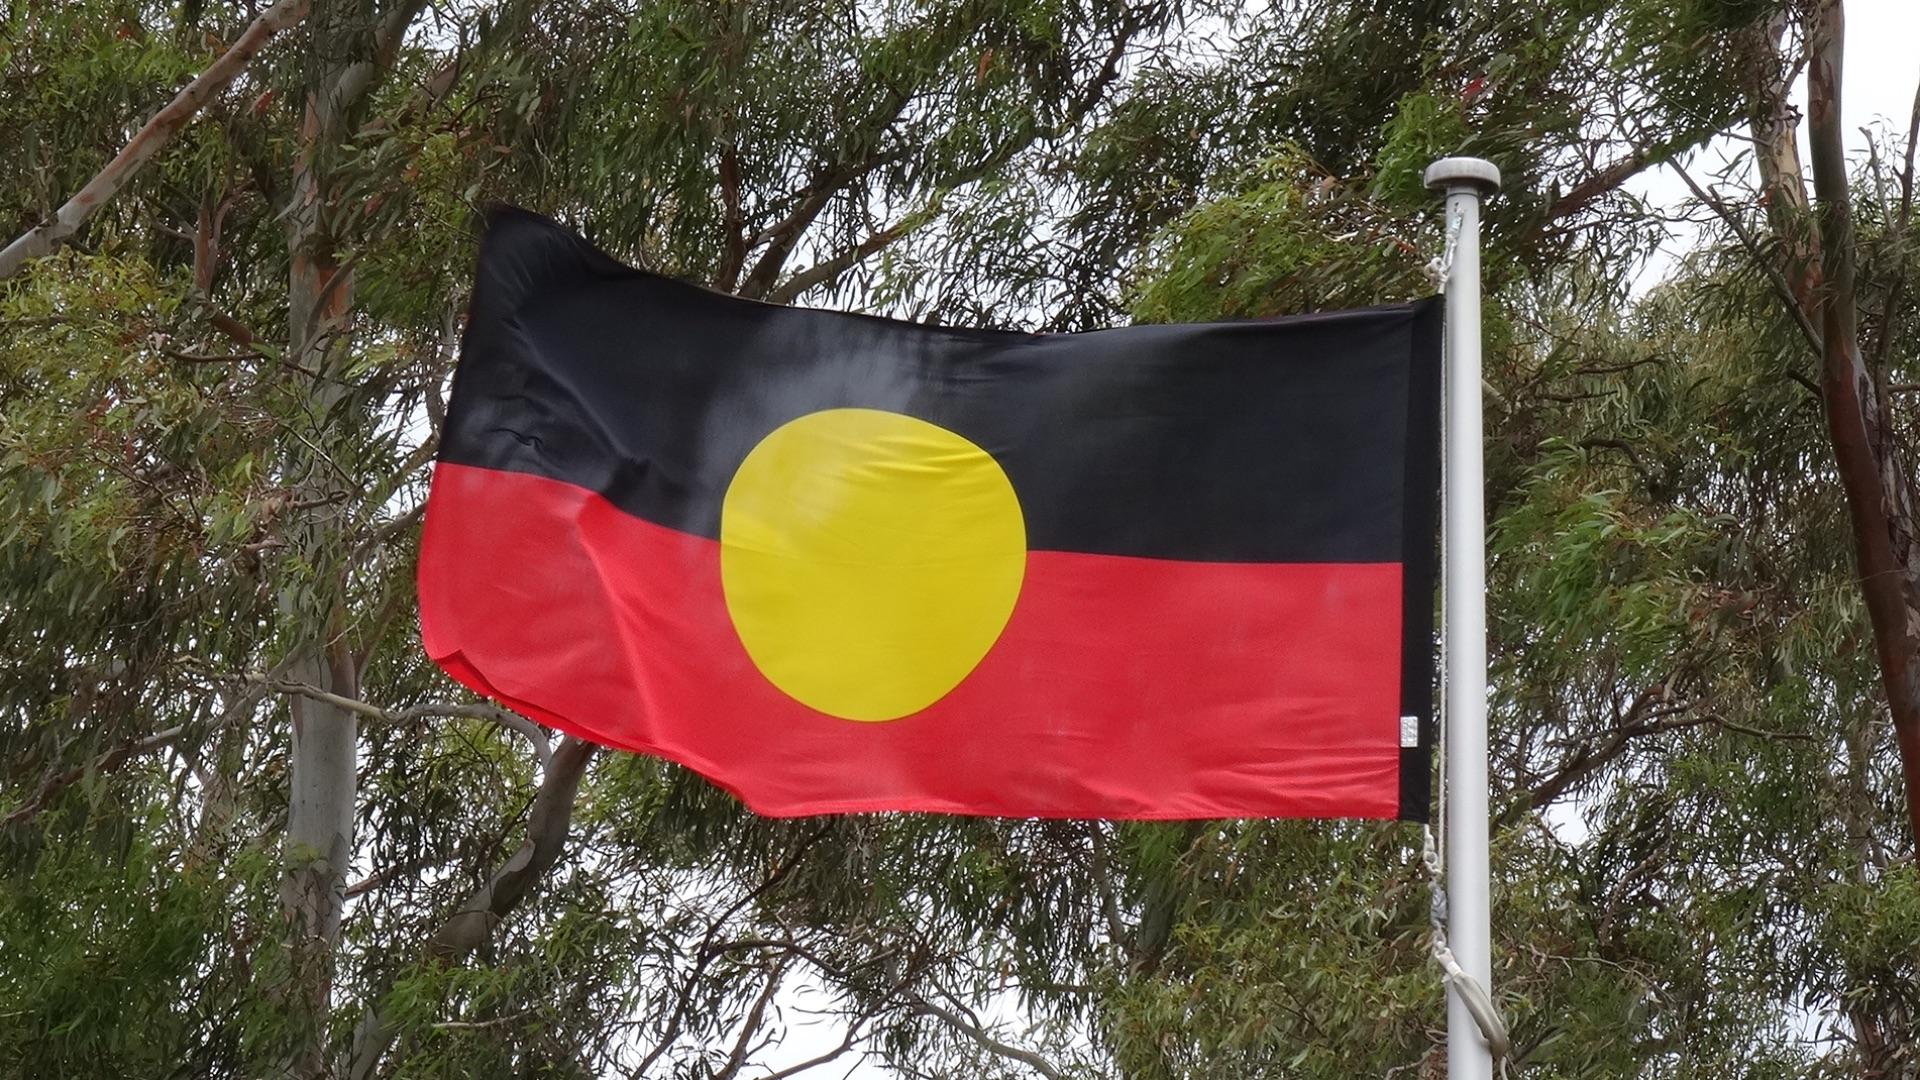 Charles Sturt University and Wiradjuri Elders win Global Citizenship